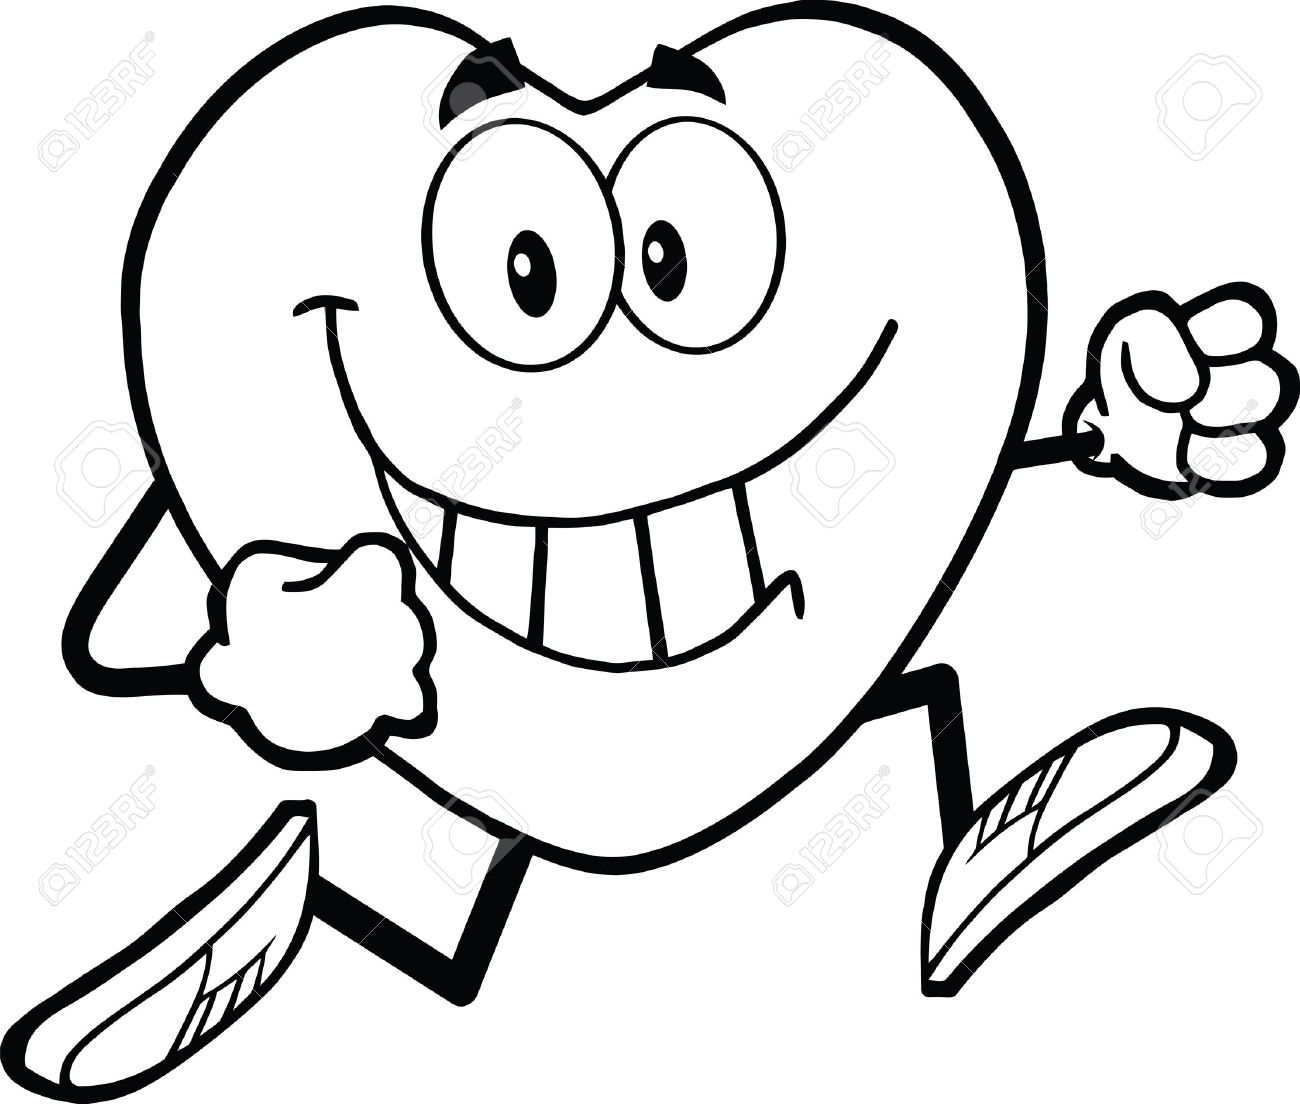 1300x1104 Black And White Smiling Heart Cartoon Mascot Character Running